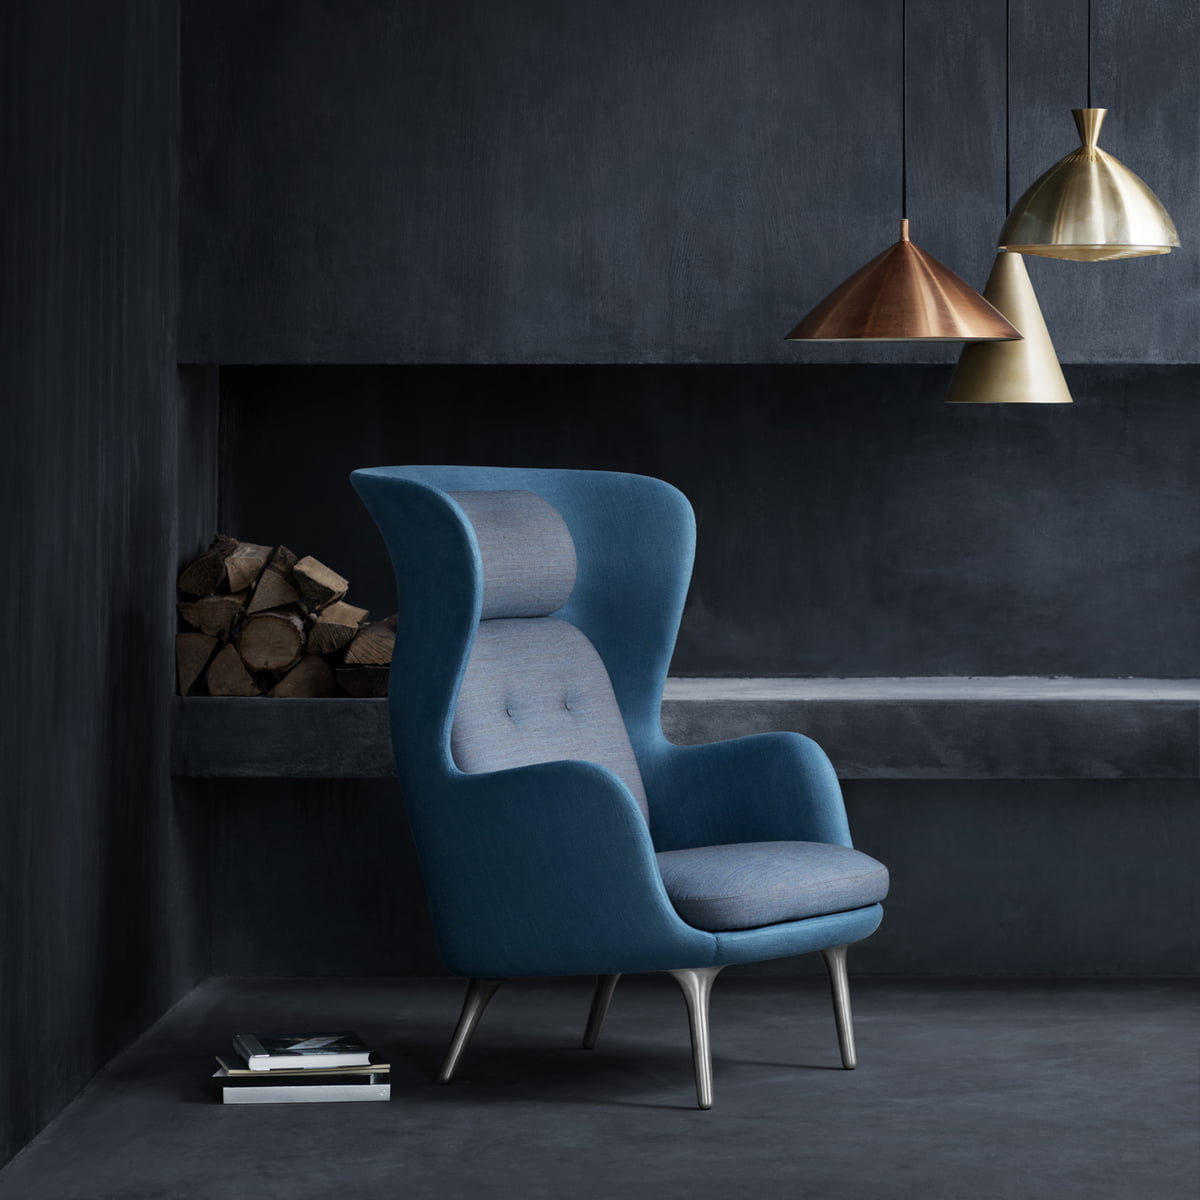 Fritz hansen ro sessel bei for Peindre salon 2 couleurs